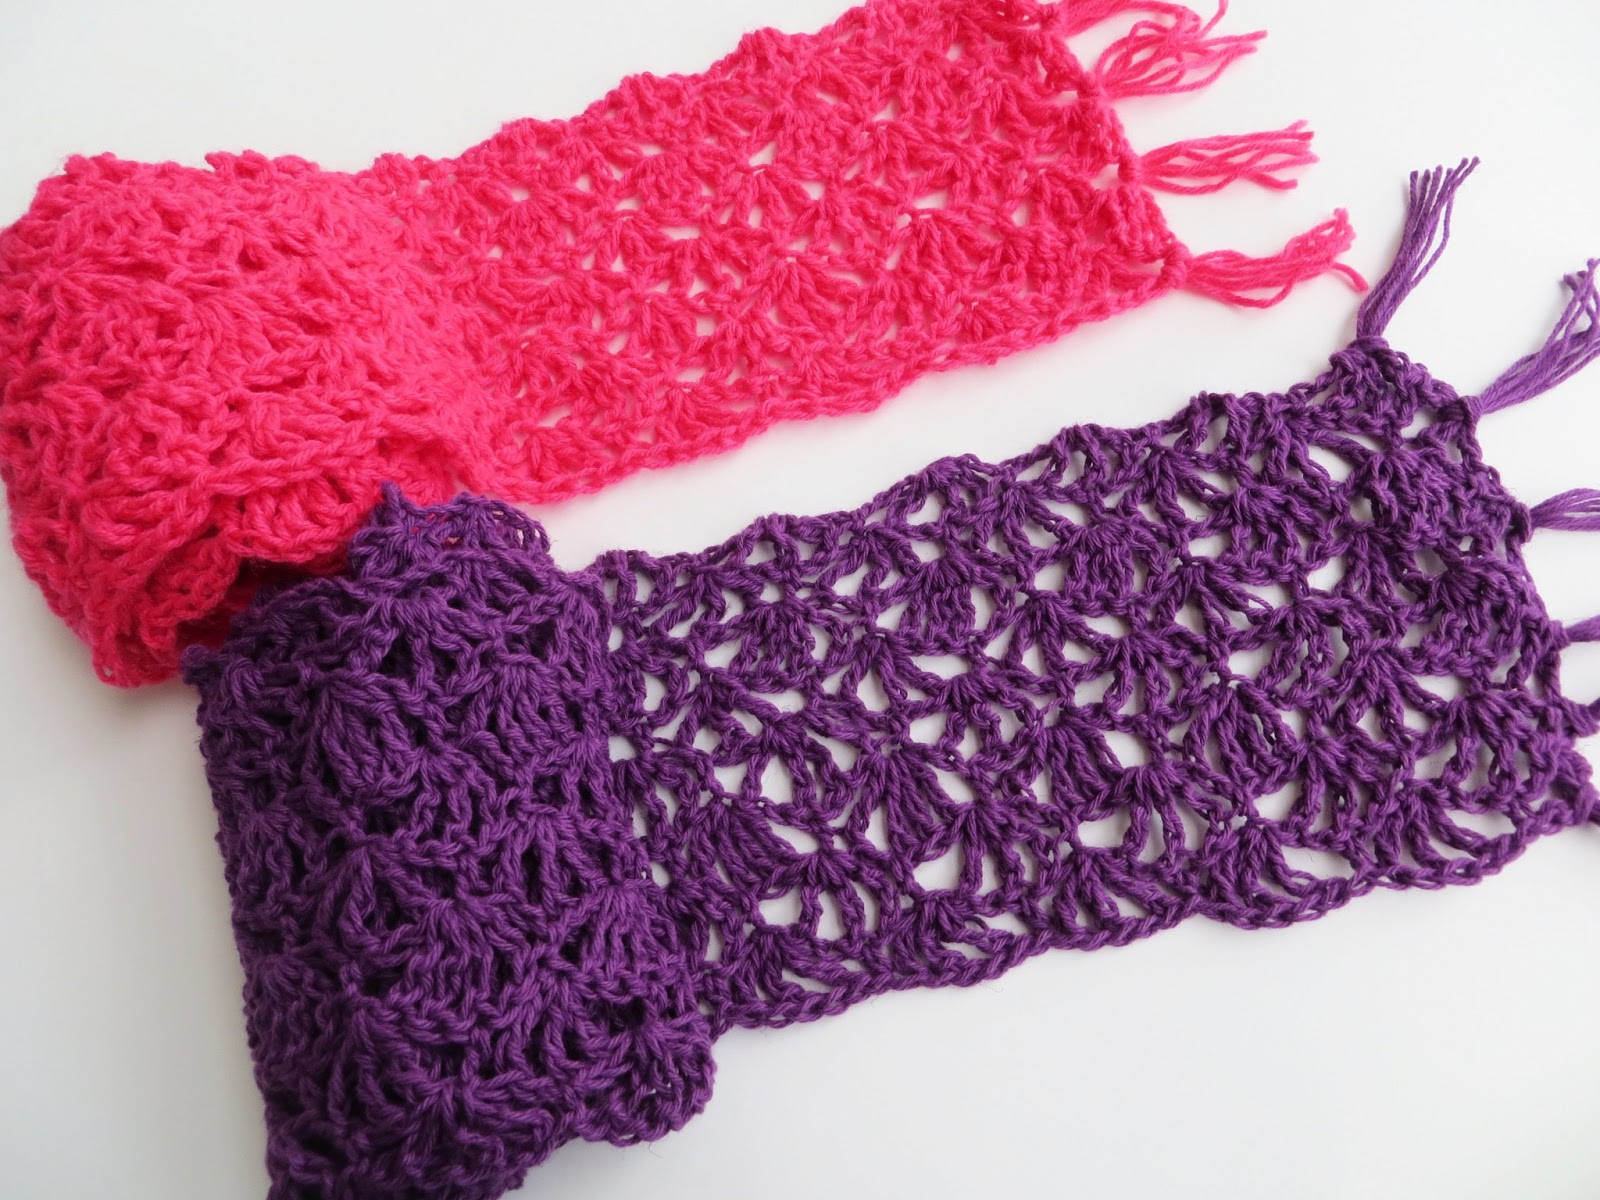 Crochet Stitches Designs : Crochet Dreamz: Alana Lacy Scarf, Free Crochet Pattern